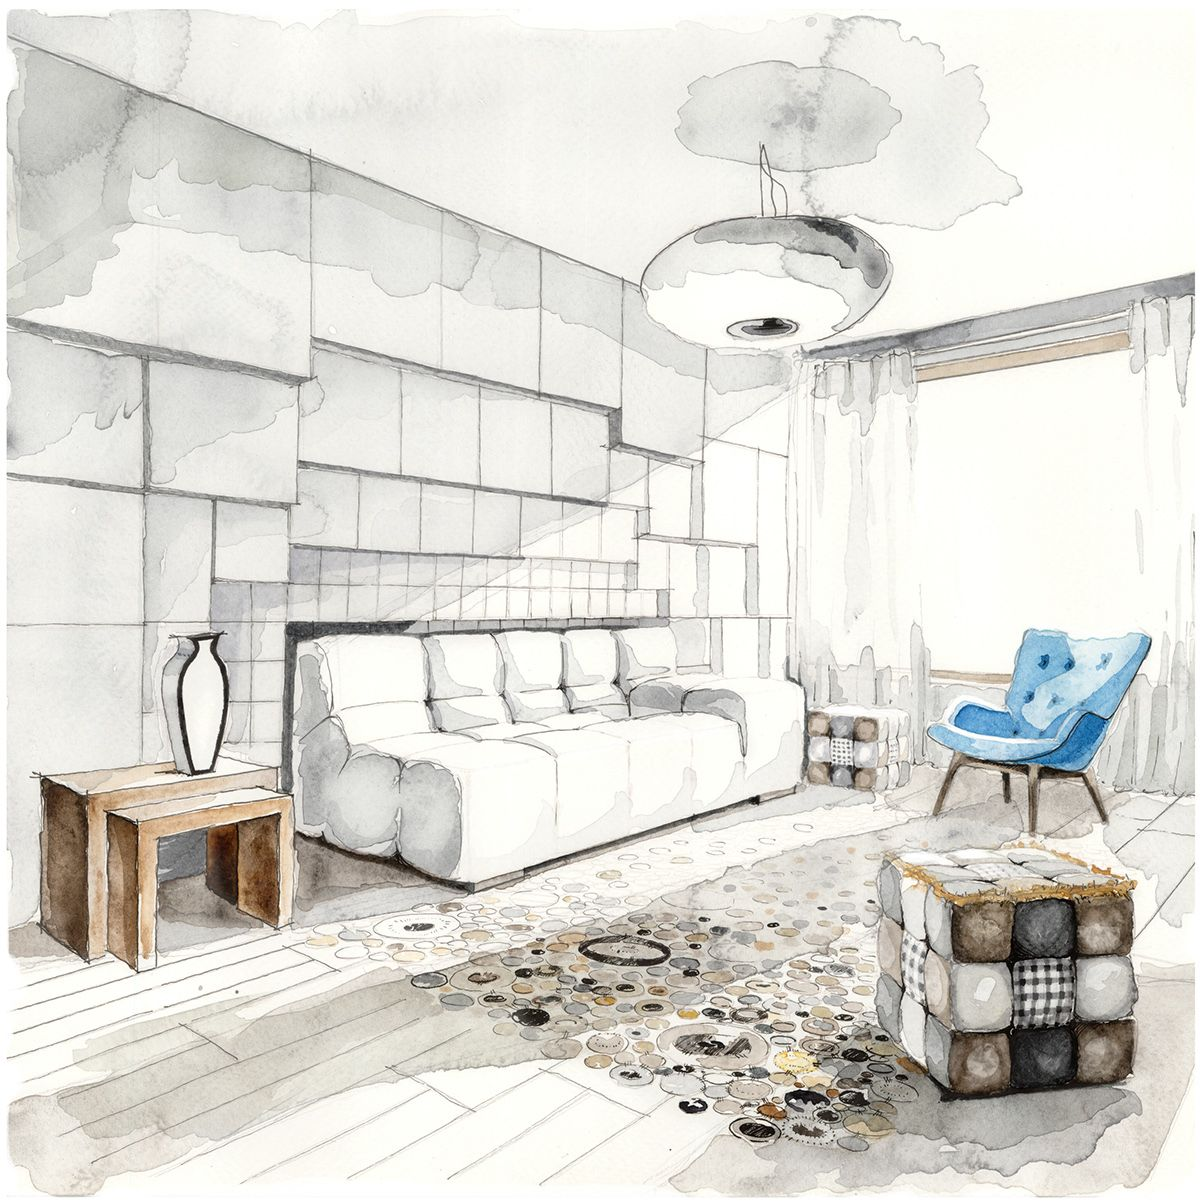 Materials And Furniture Stage Of An Interior Project In Process Realization Design SketchesInterior Architecture DrawingInterior